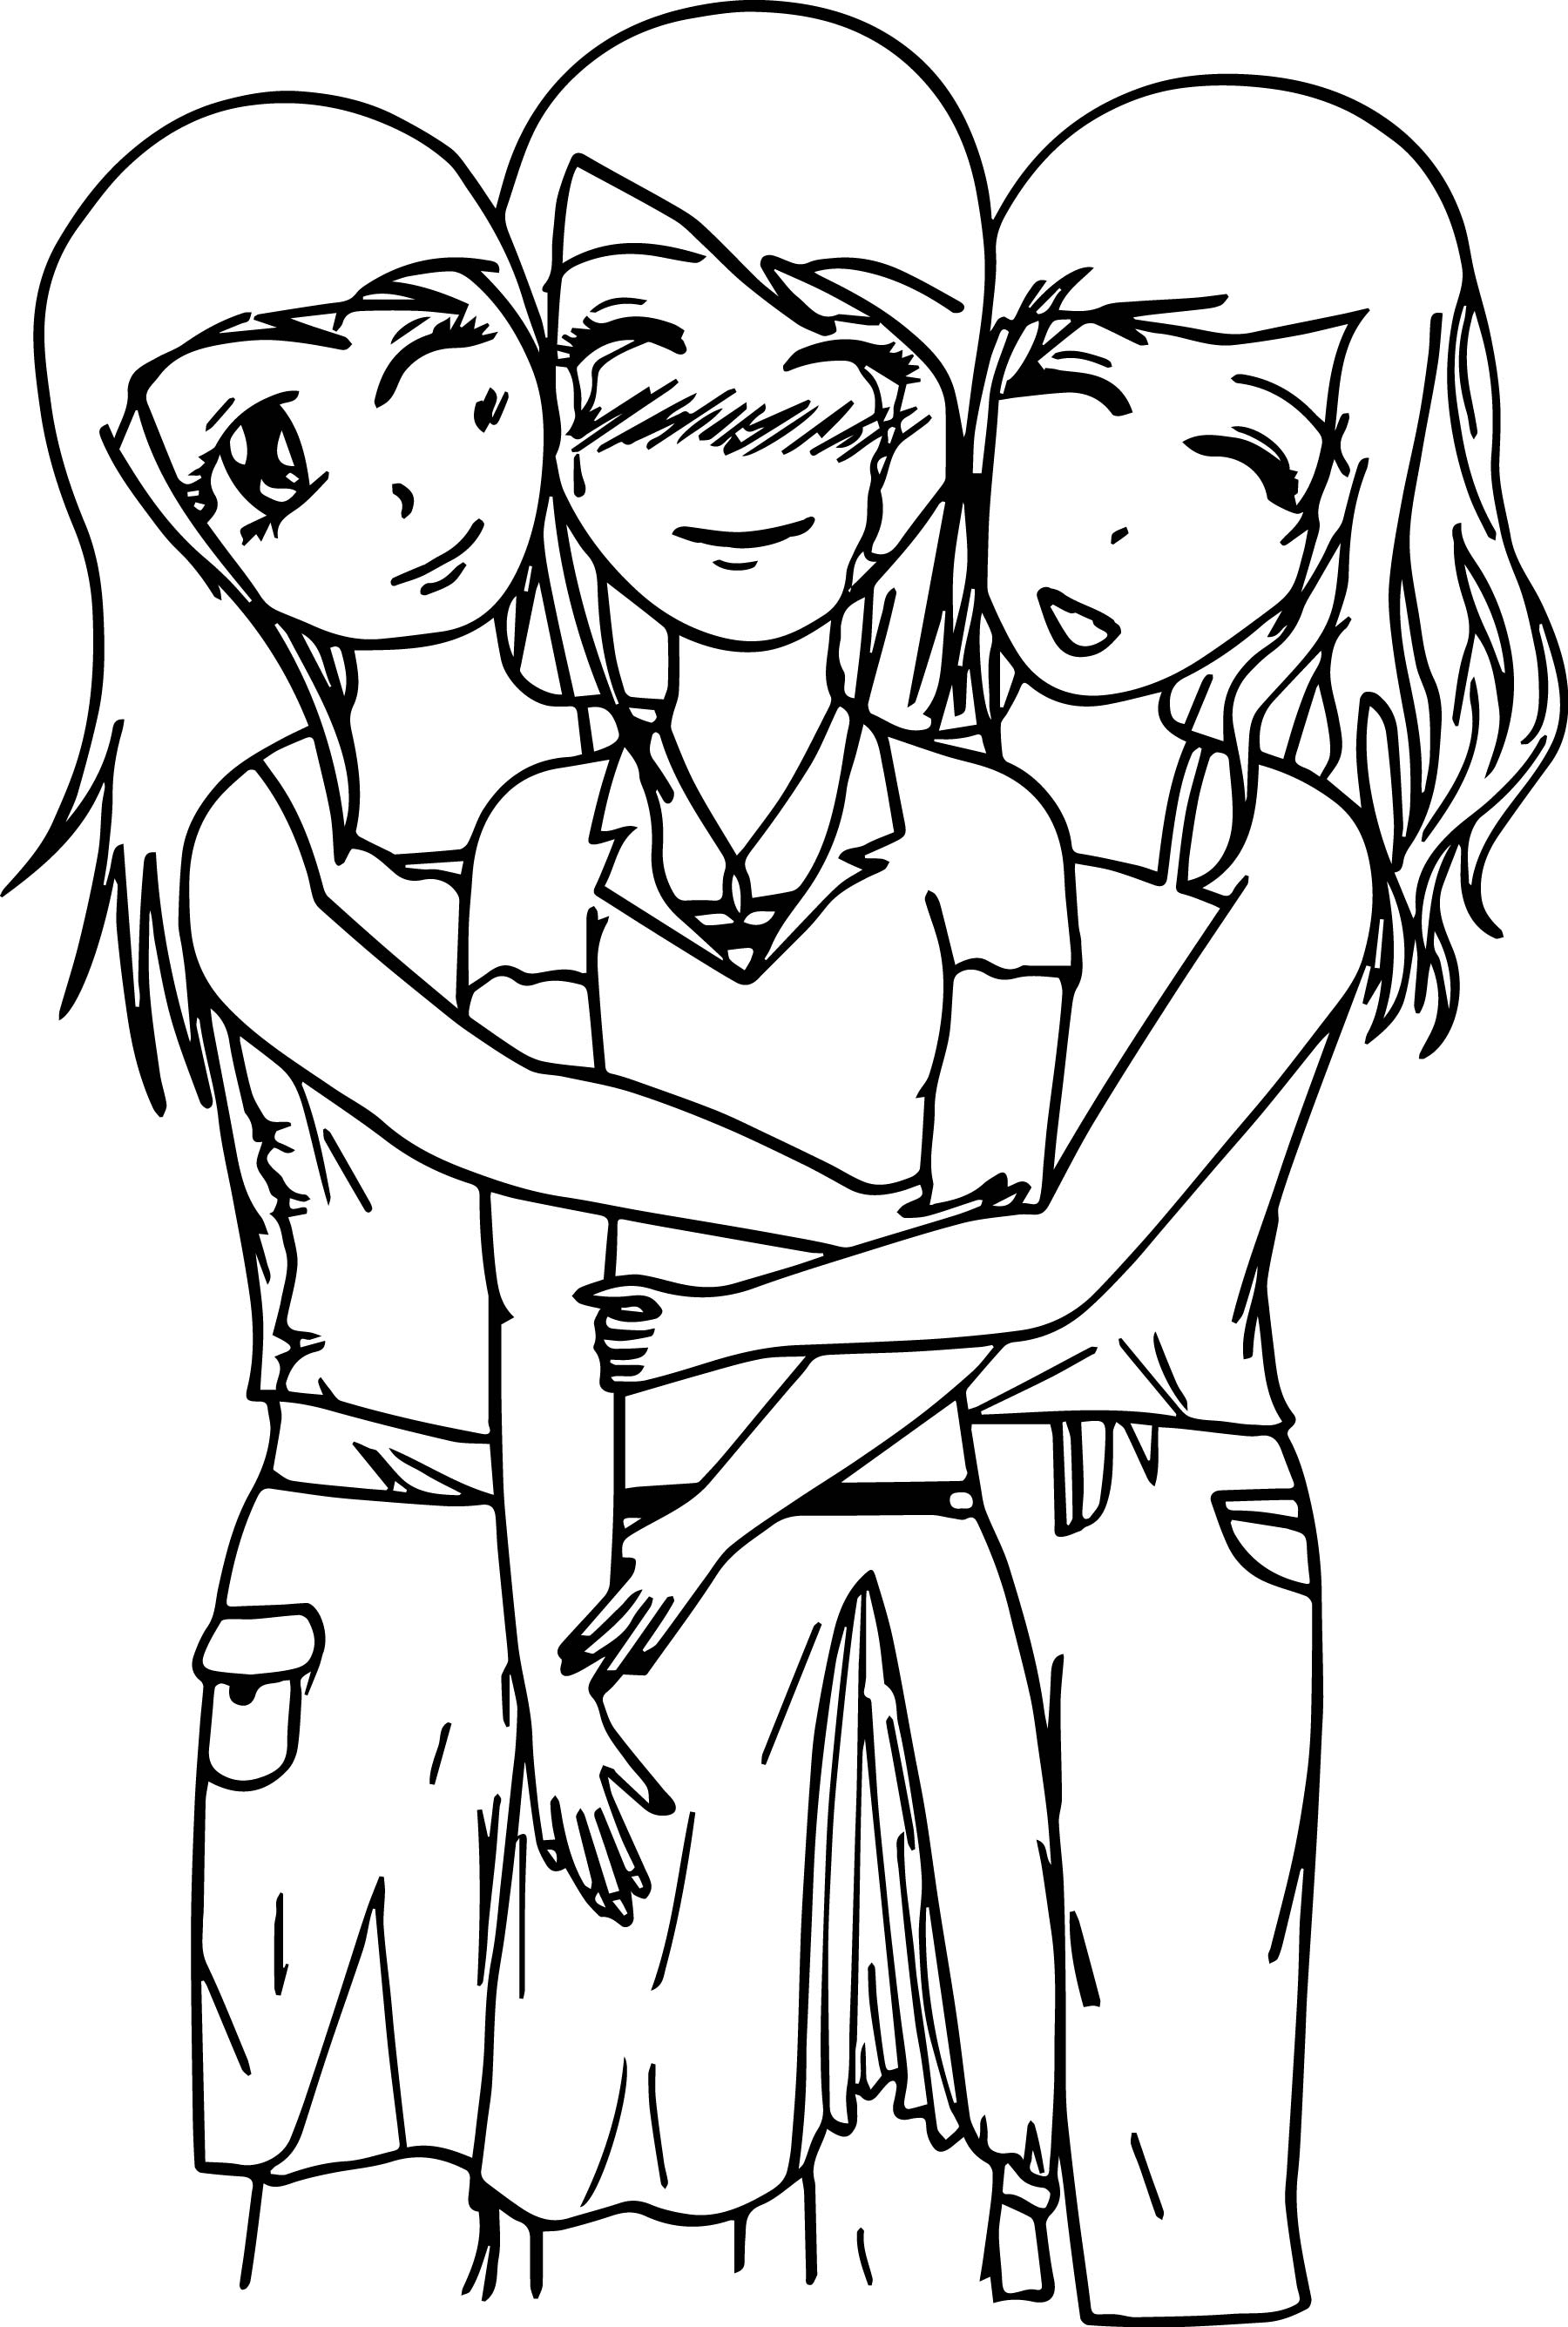 coloring pages best friends best friend coloring pages to download and print for free best coloring pages friends